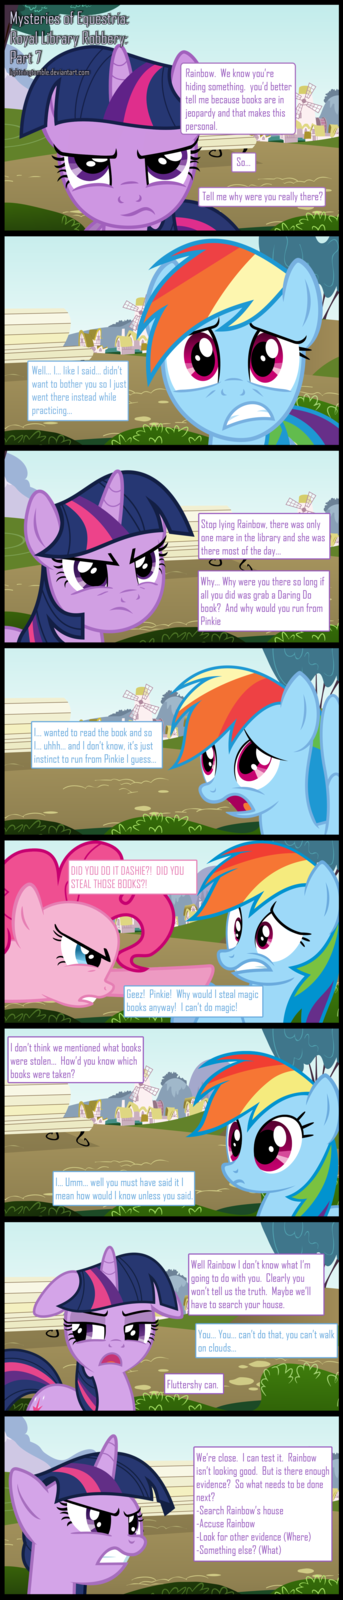 Mysteries of Equestria: Library Robbery: Part 7